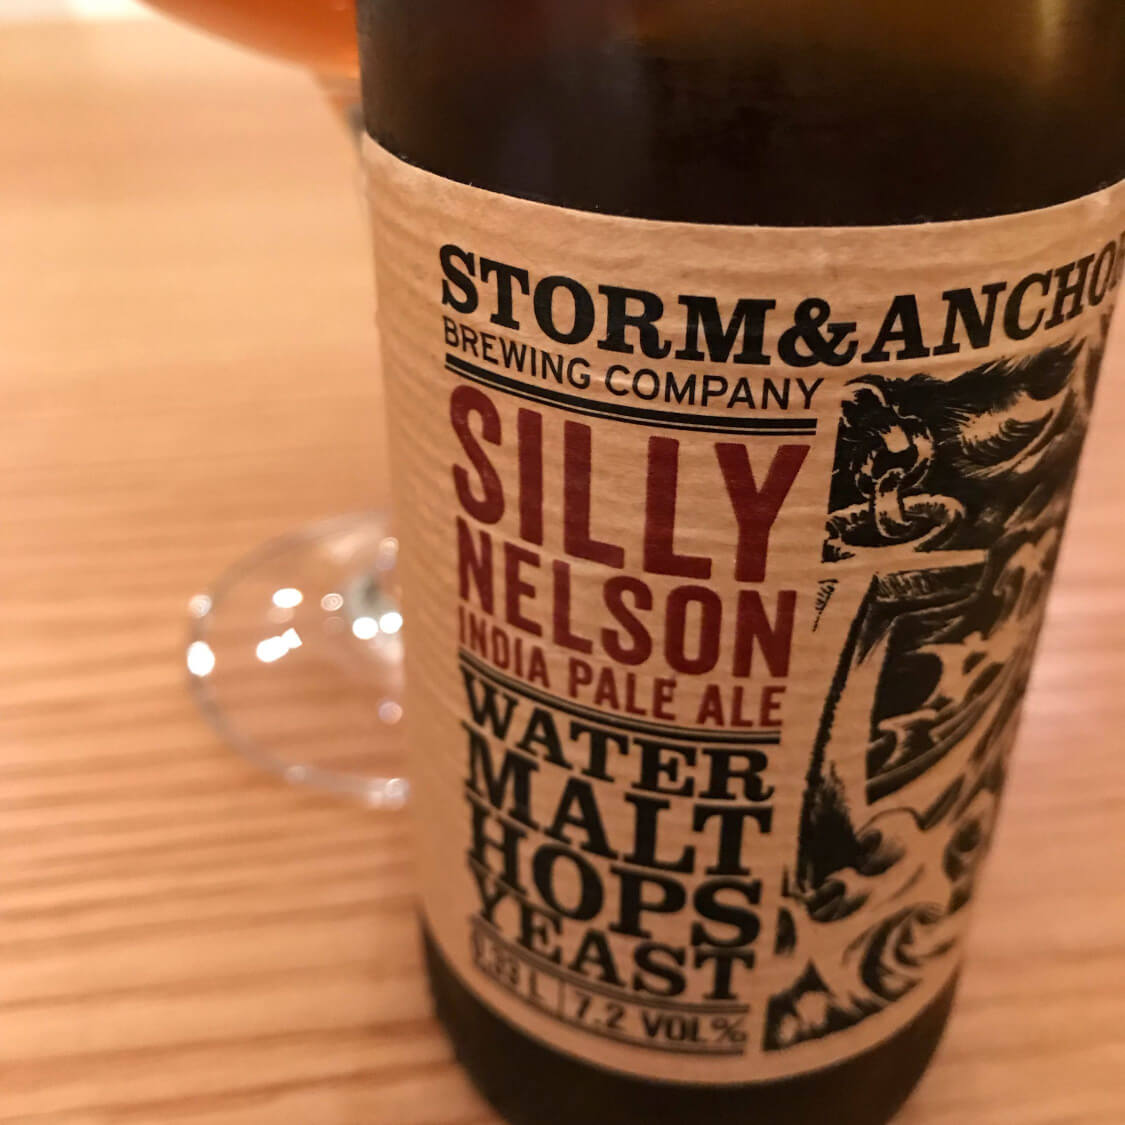 Storm&Anchor Silly Nelson